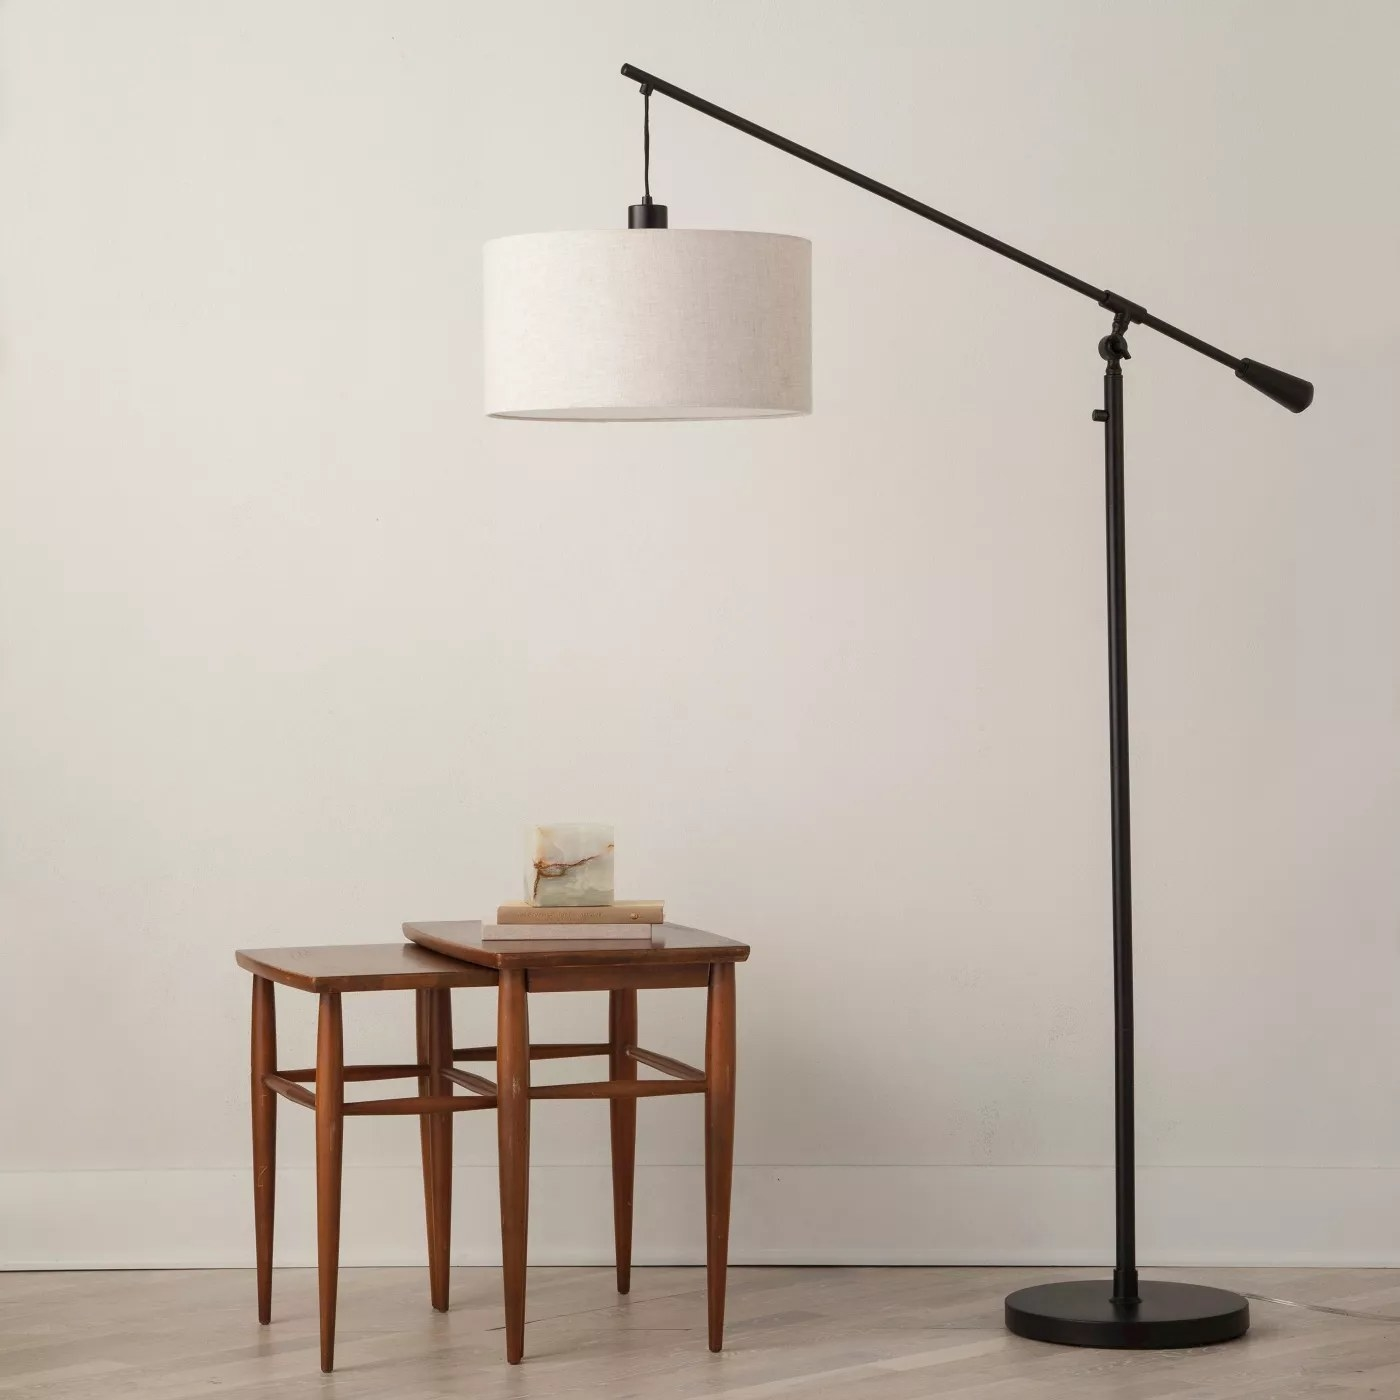 The pendant floor lamp with a black base and white lamp shade in a living room